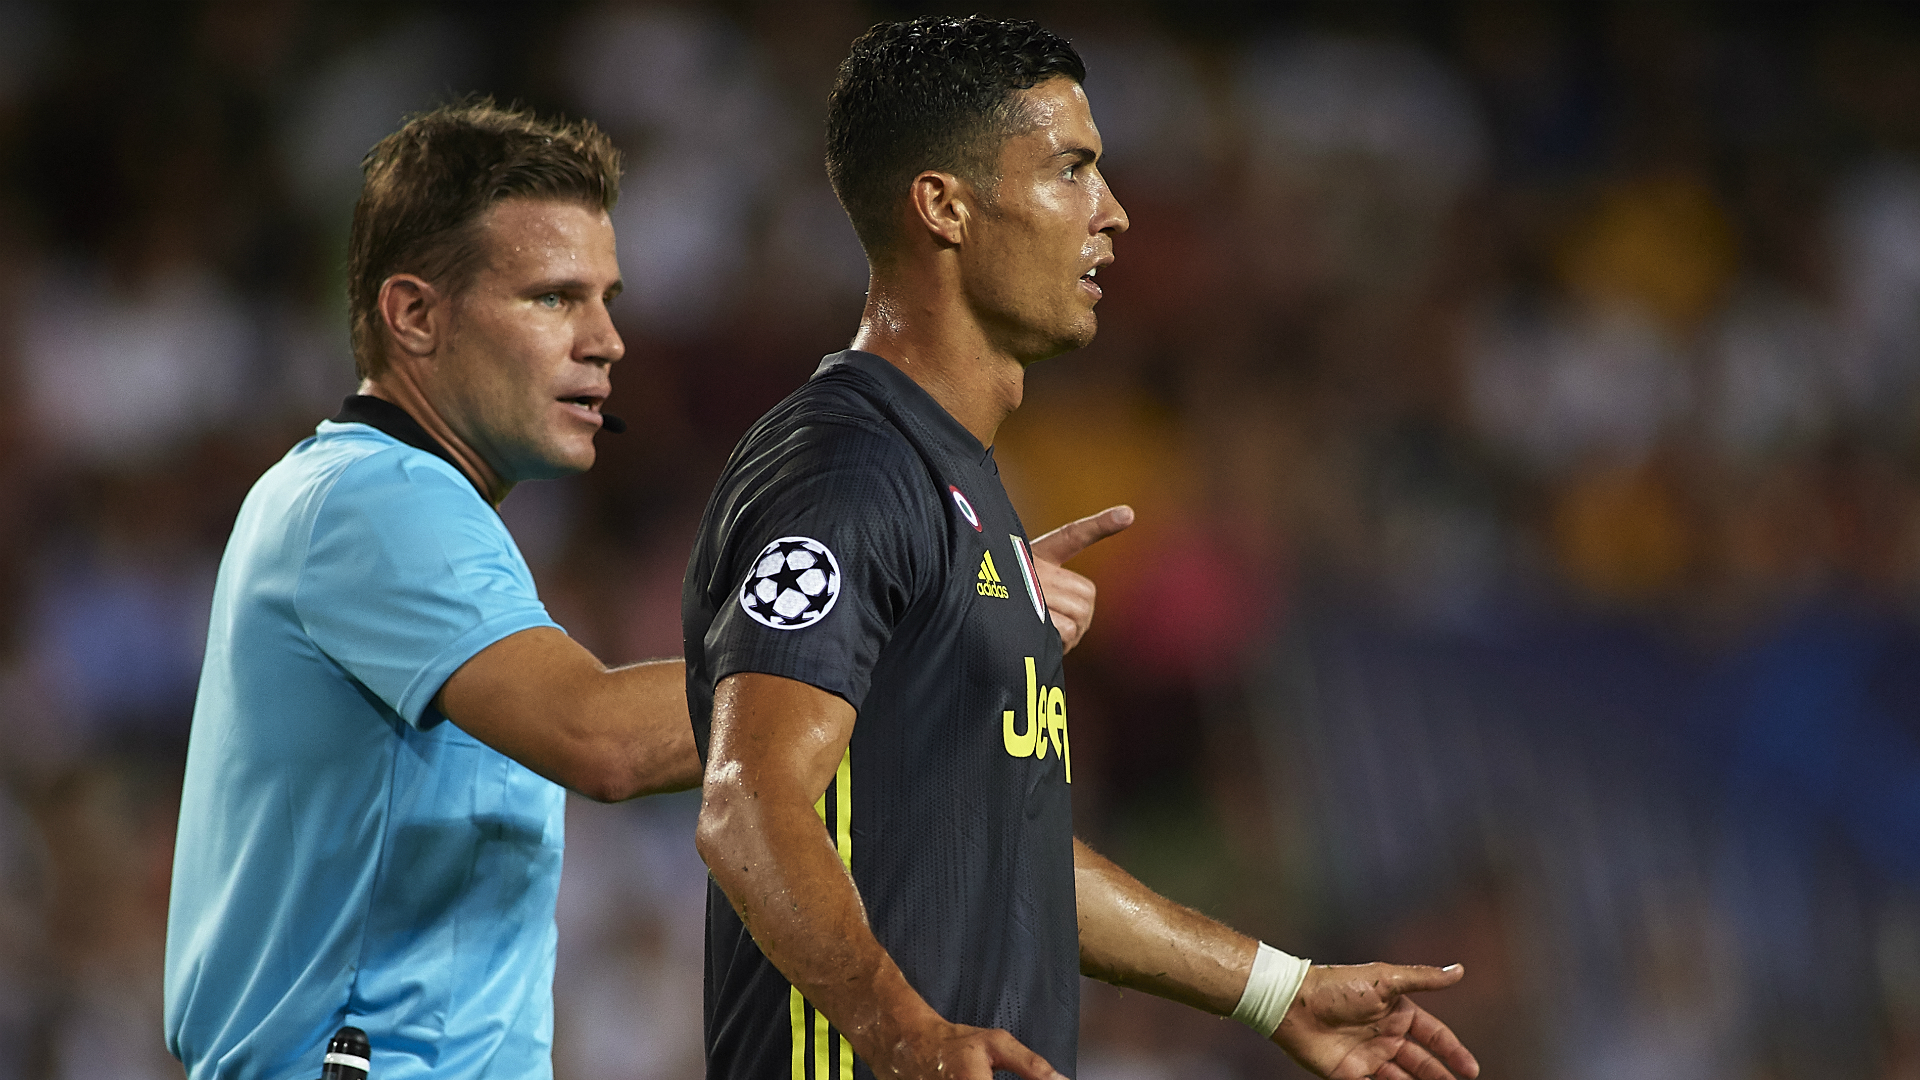 Marcelino: Tearful Ronaldo said he did nothing wrong